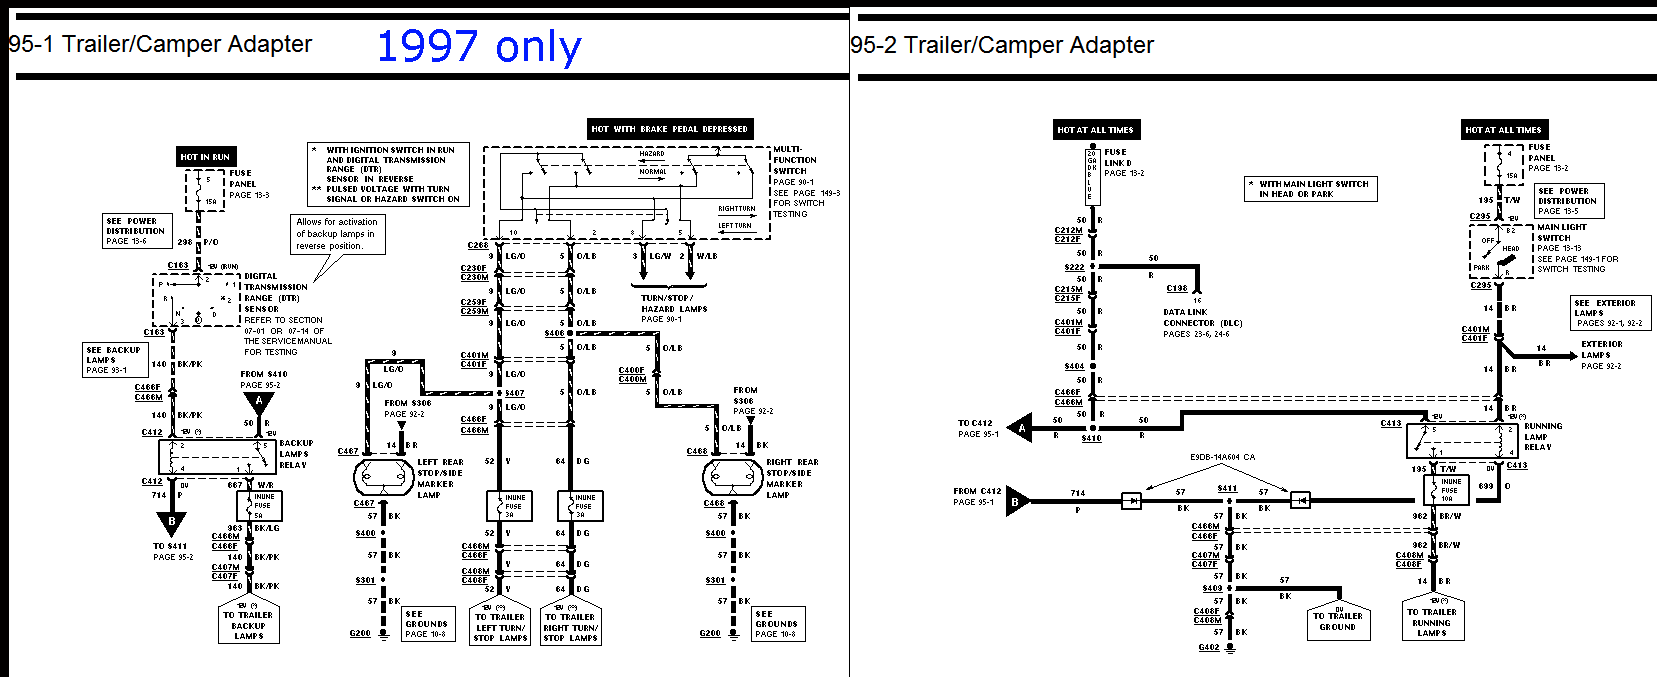 Ford F350 Trailer Wiring Diagram 94 96 Guide And Troubleshooting 1999 Ranger Computer 1996 Explained Rh 8 11 Corruptionincoal Org 1994 F 350 2003